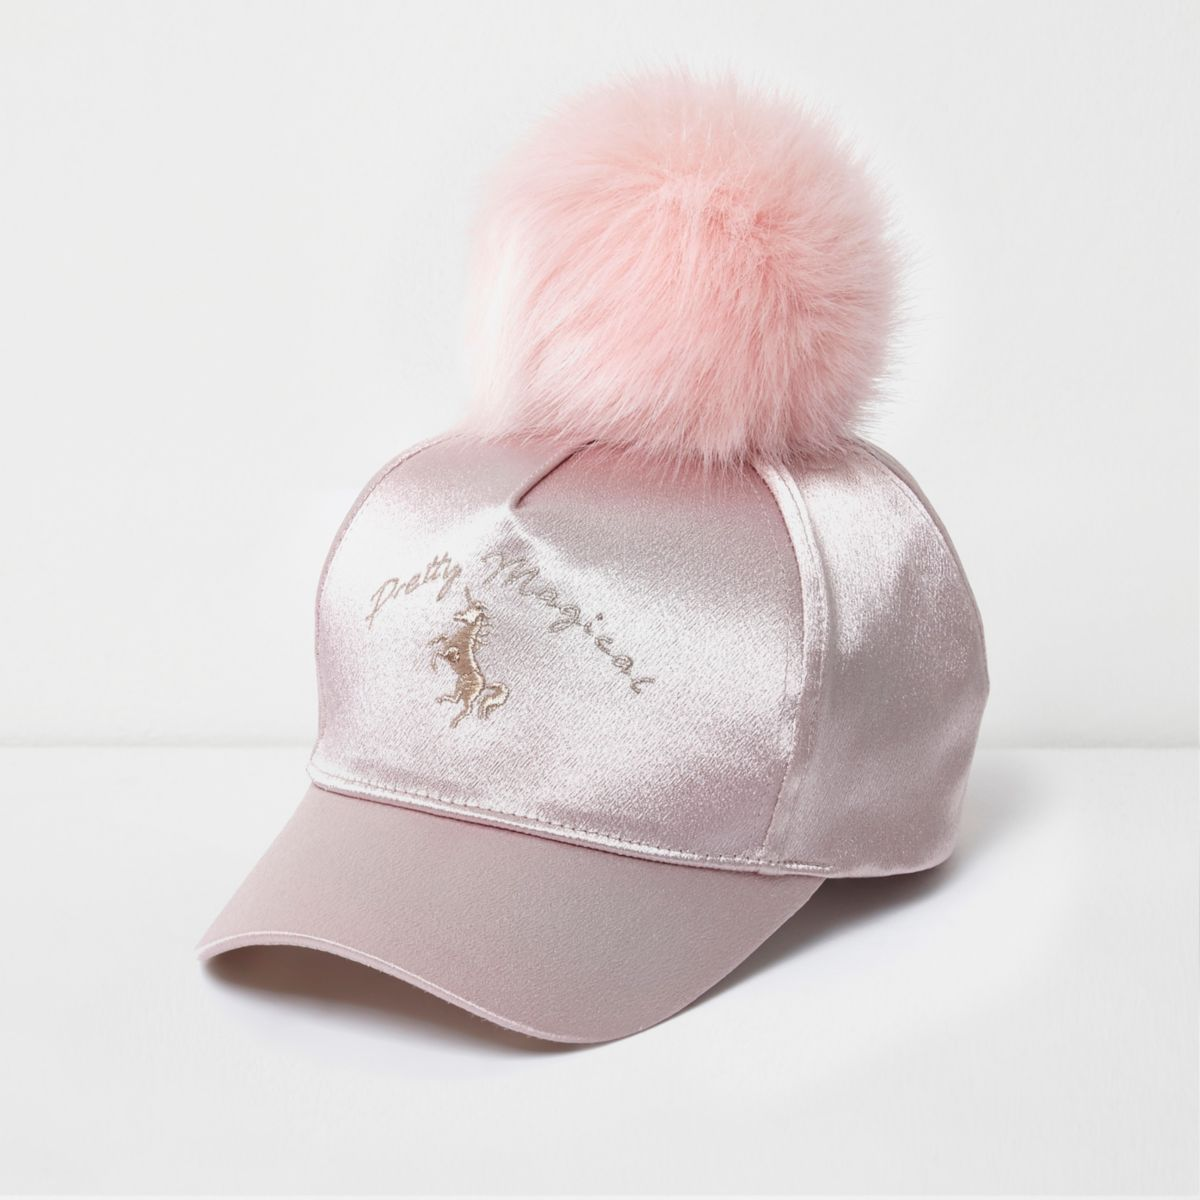 Girls pink satin unicorn pom pom baseball cap